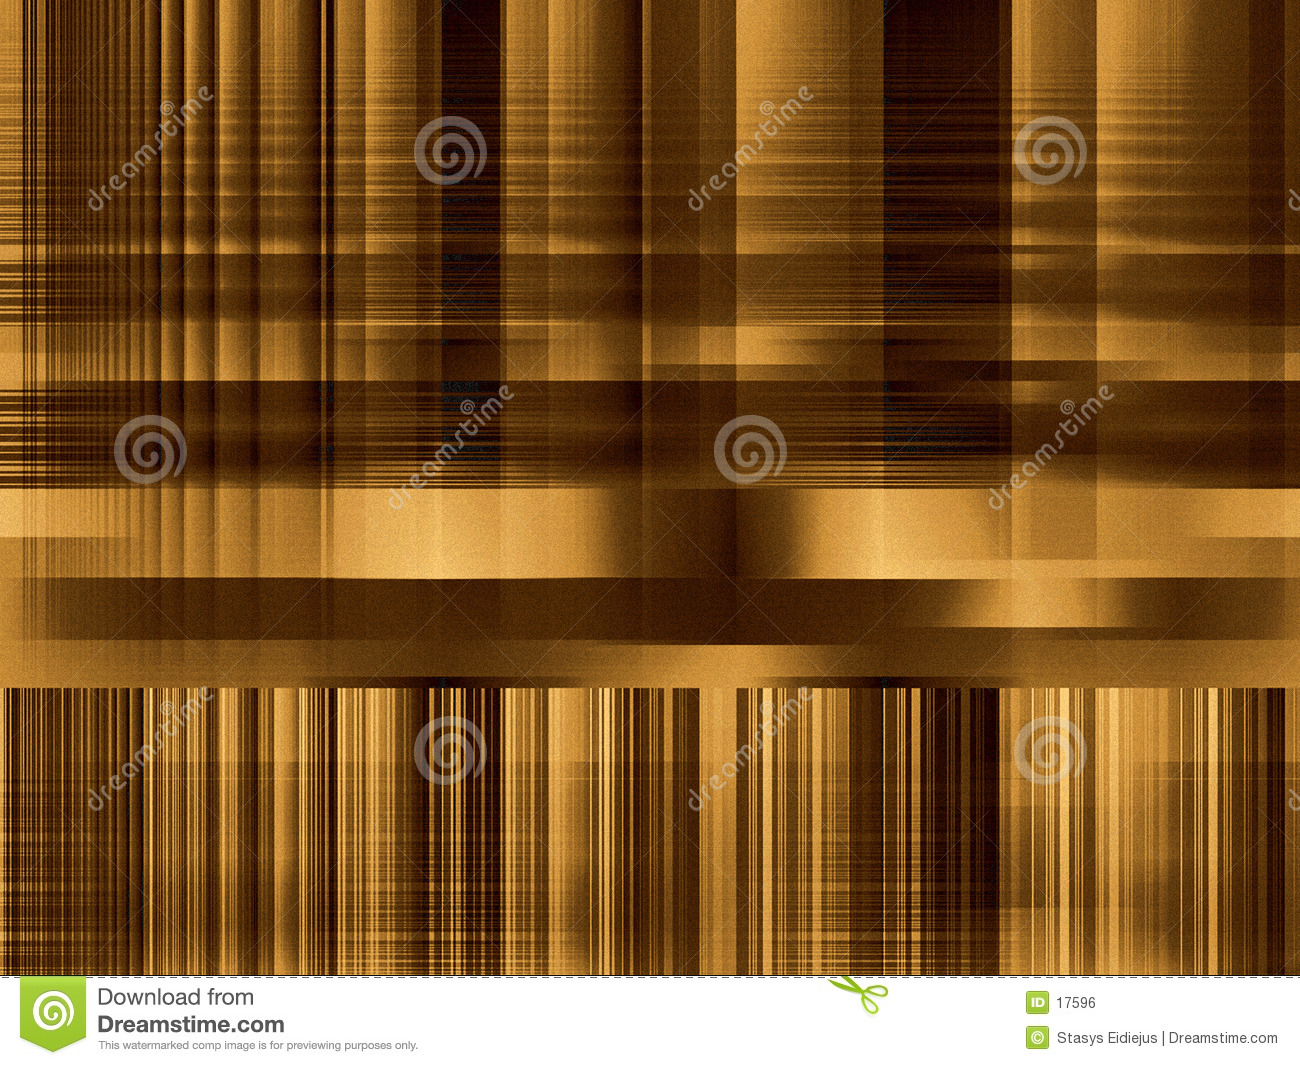 Abstract background- square and lined